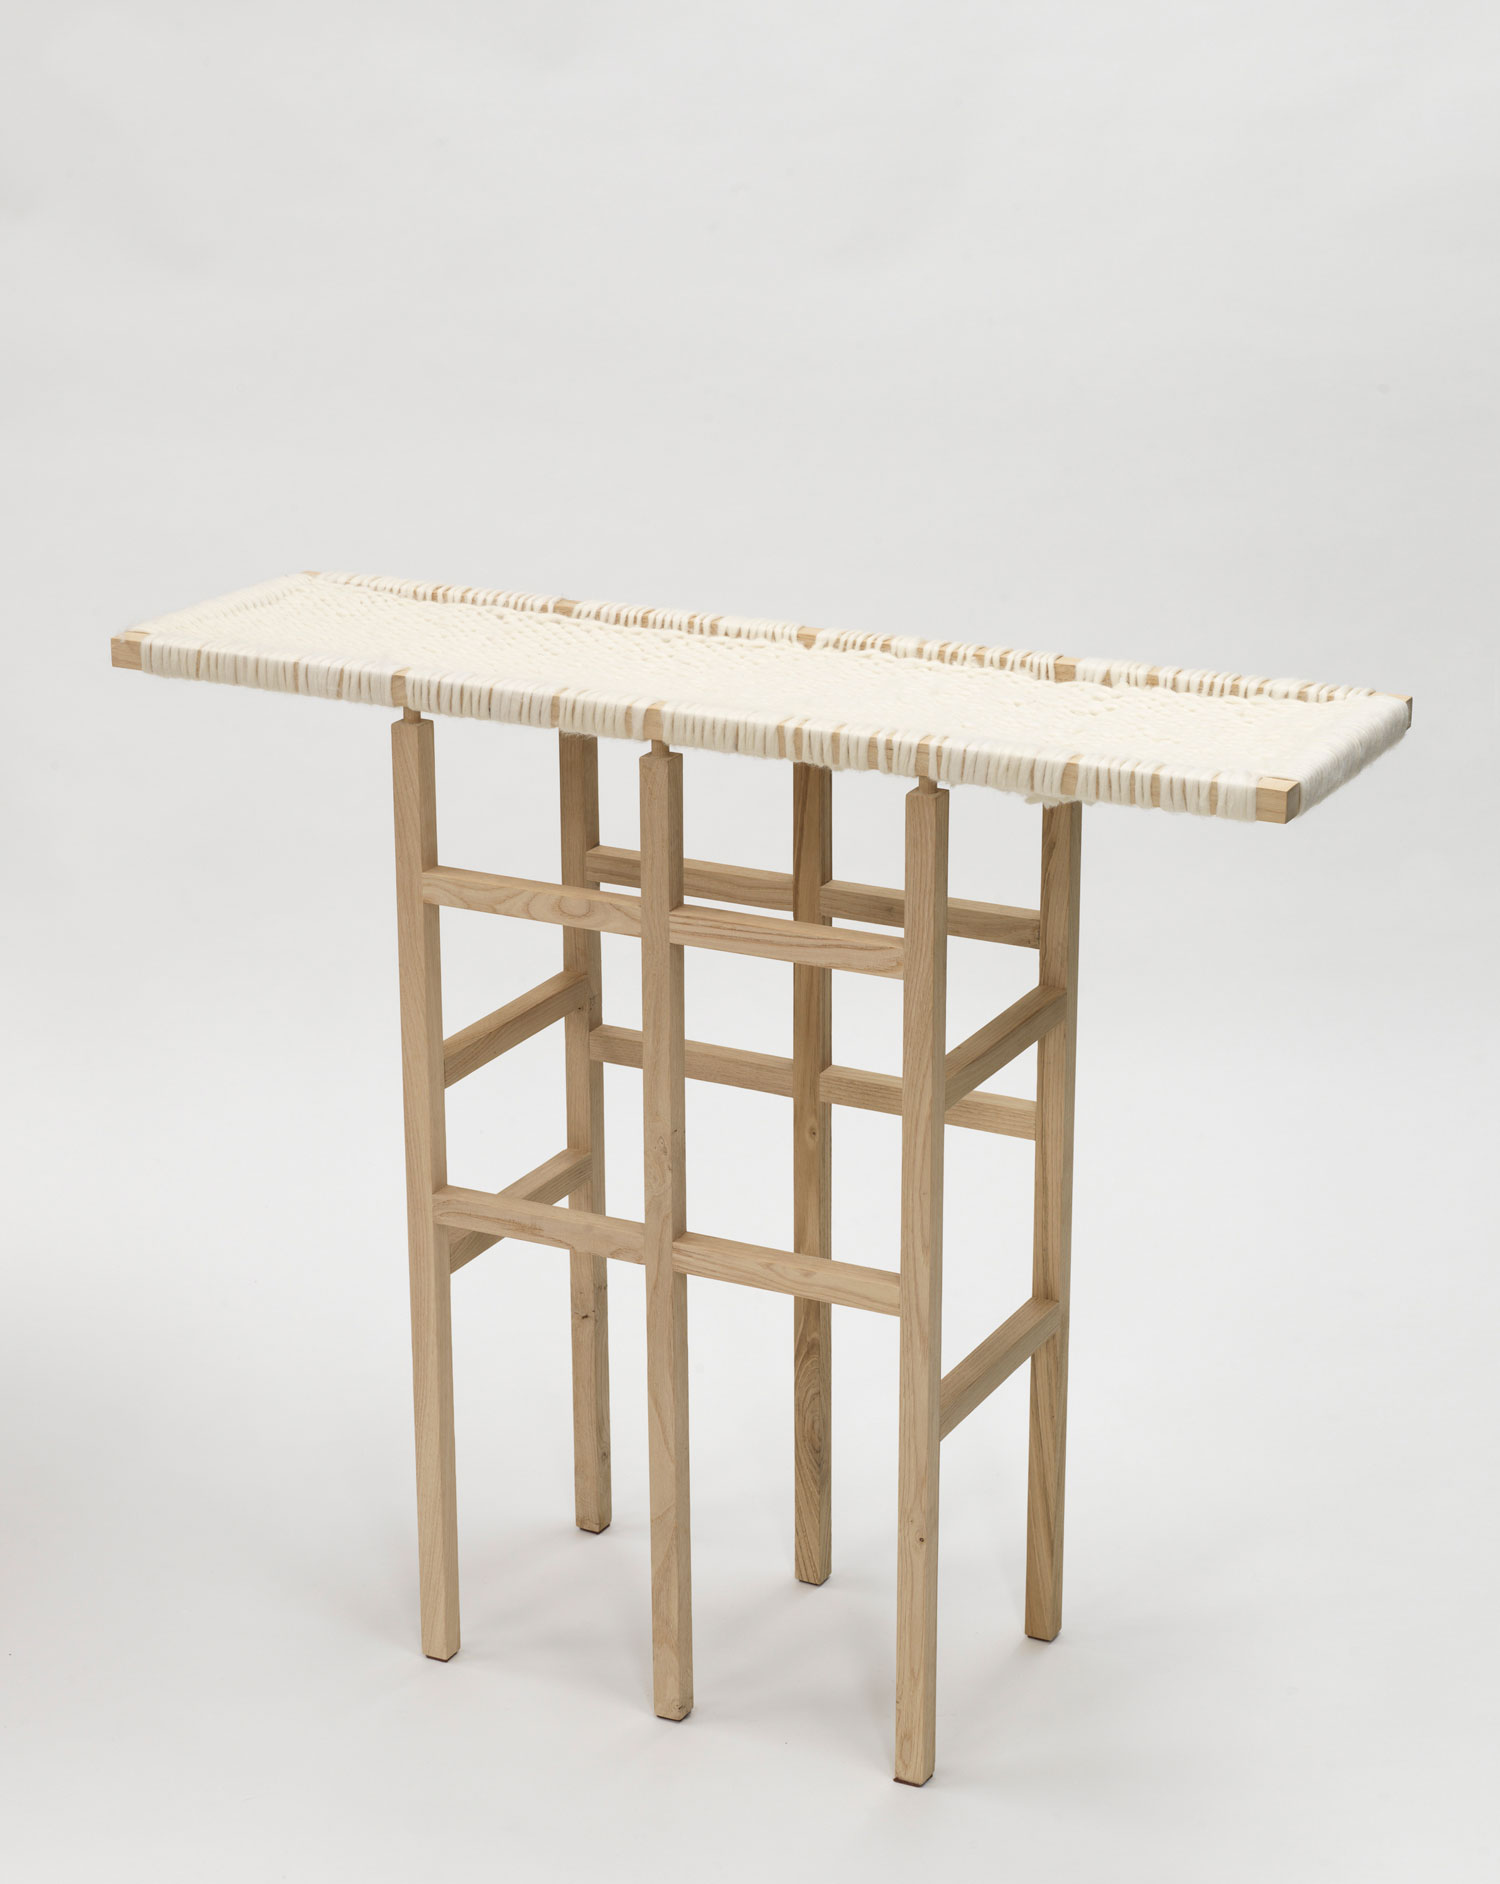 Wool and Wooden Console by Amaury Poudray, part of Objects in between Exhibition at IMM Cologne 2015 | Yellowtrace